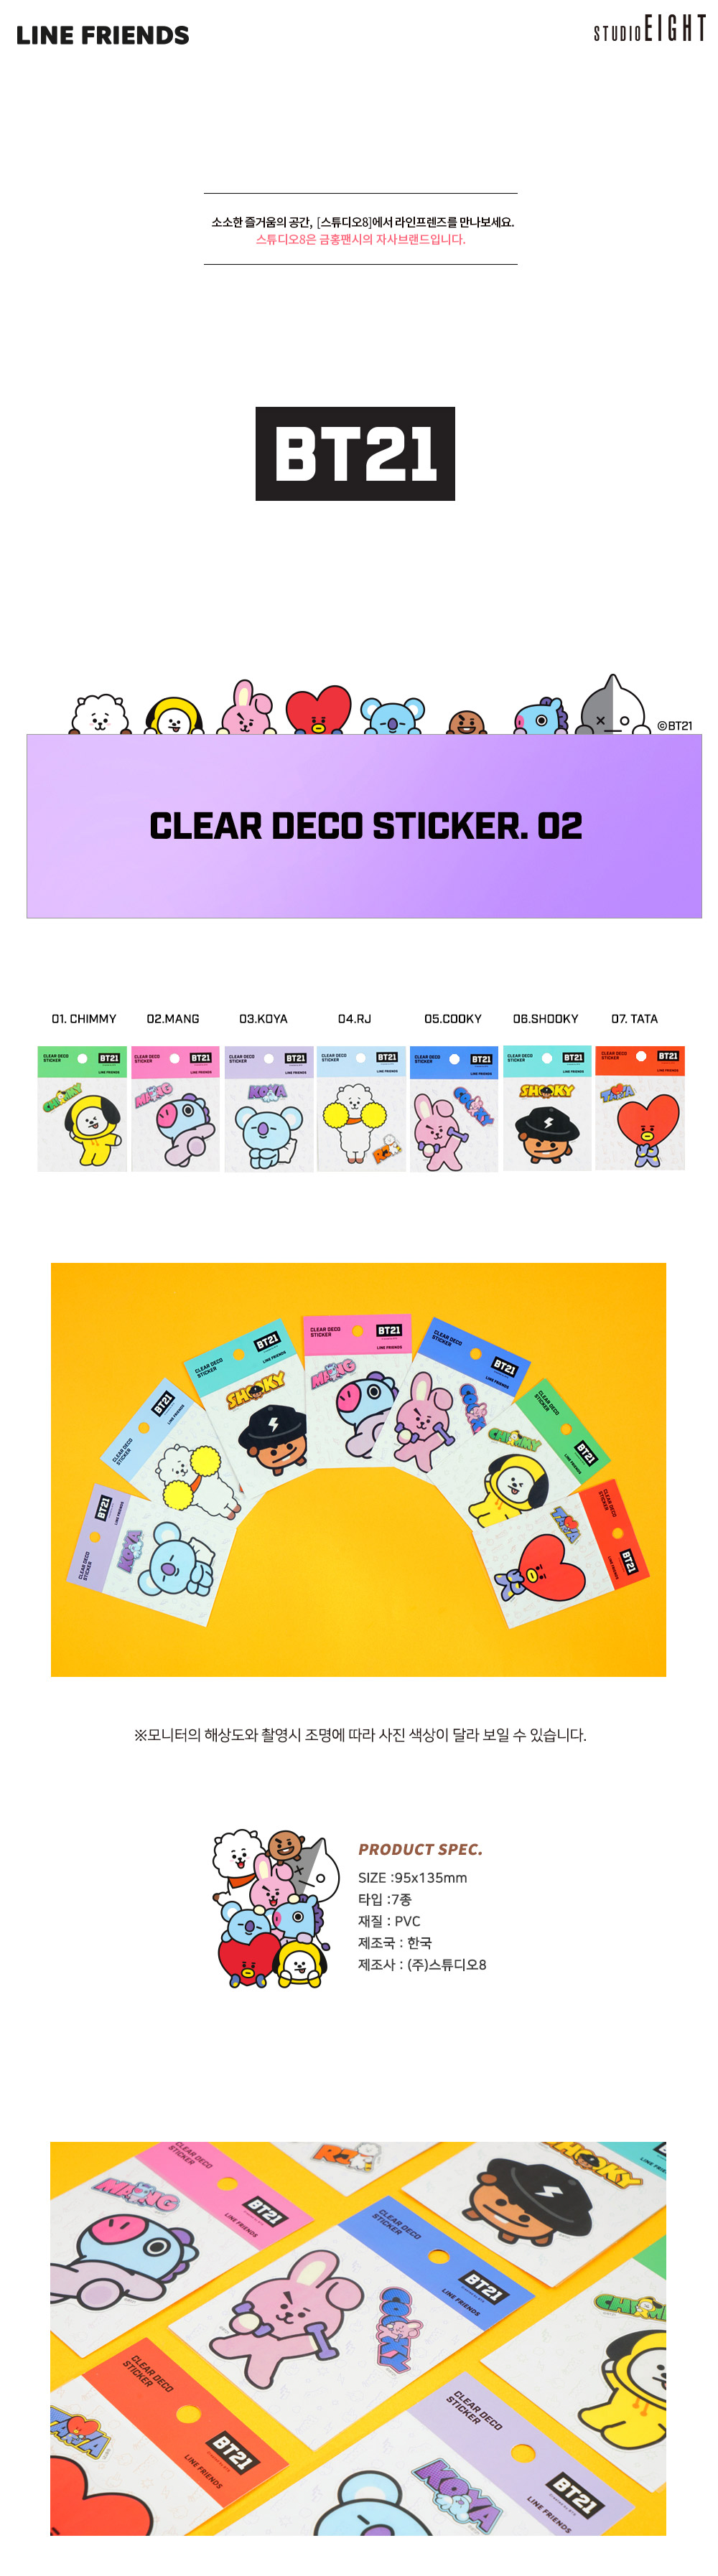 bt21_cleardecostickerver02_01.jpg